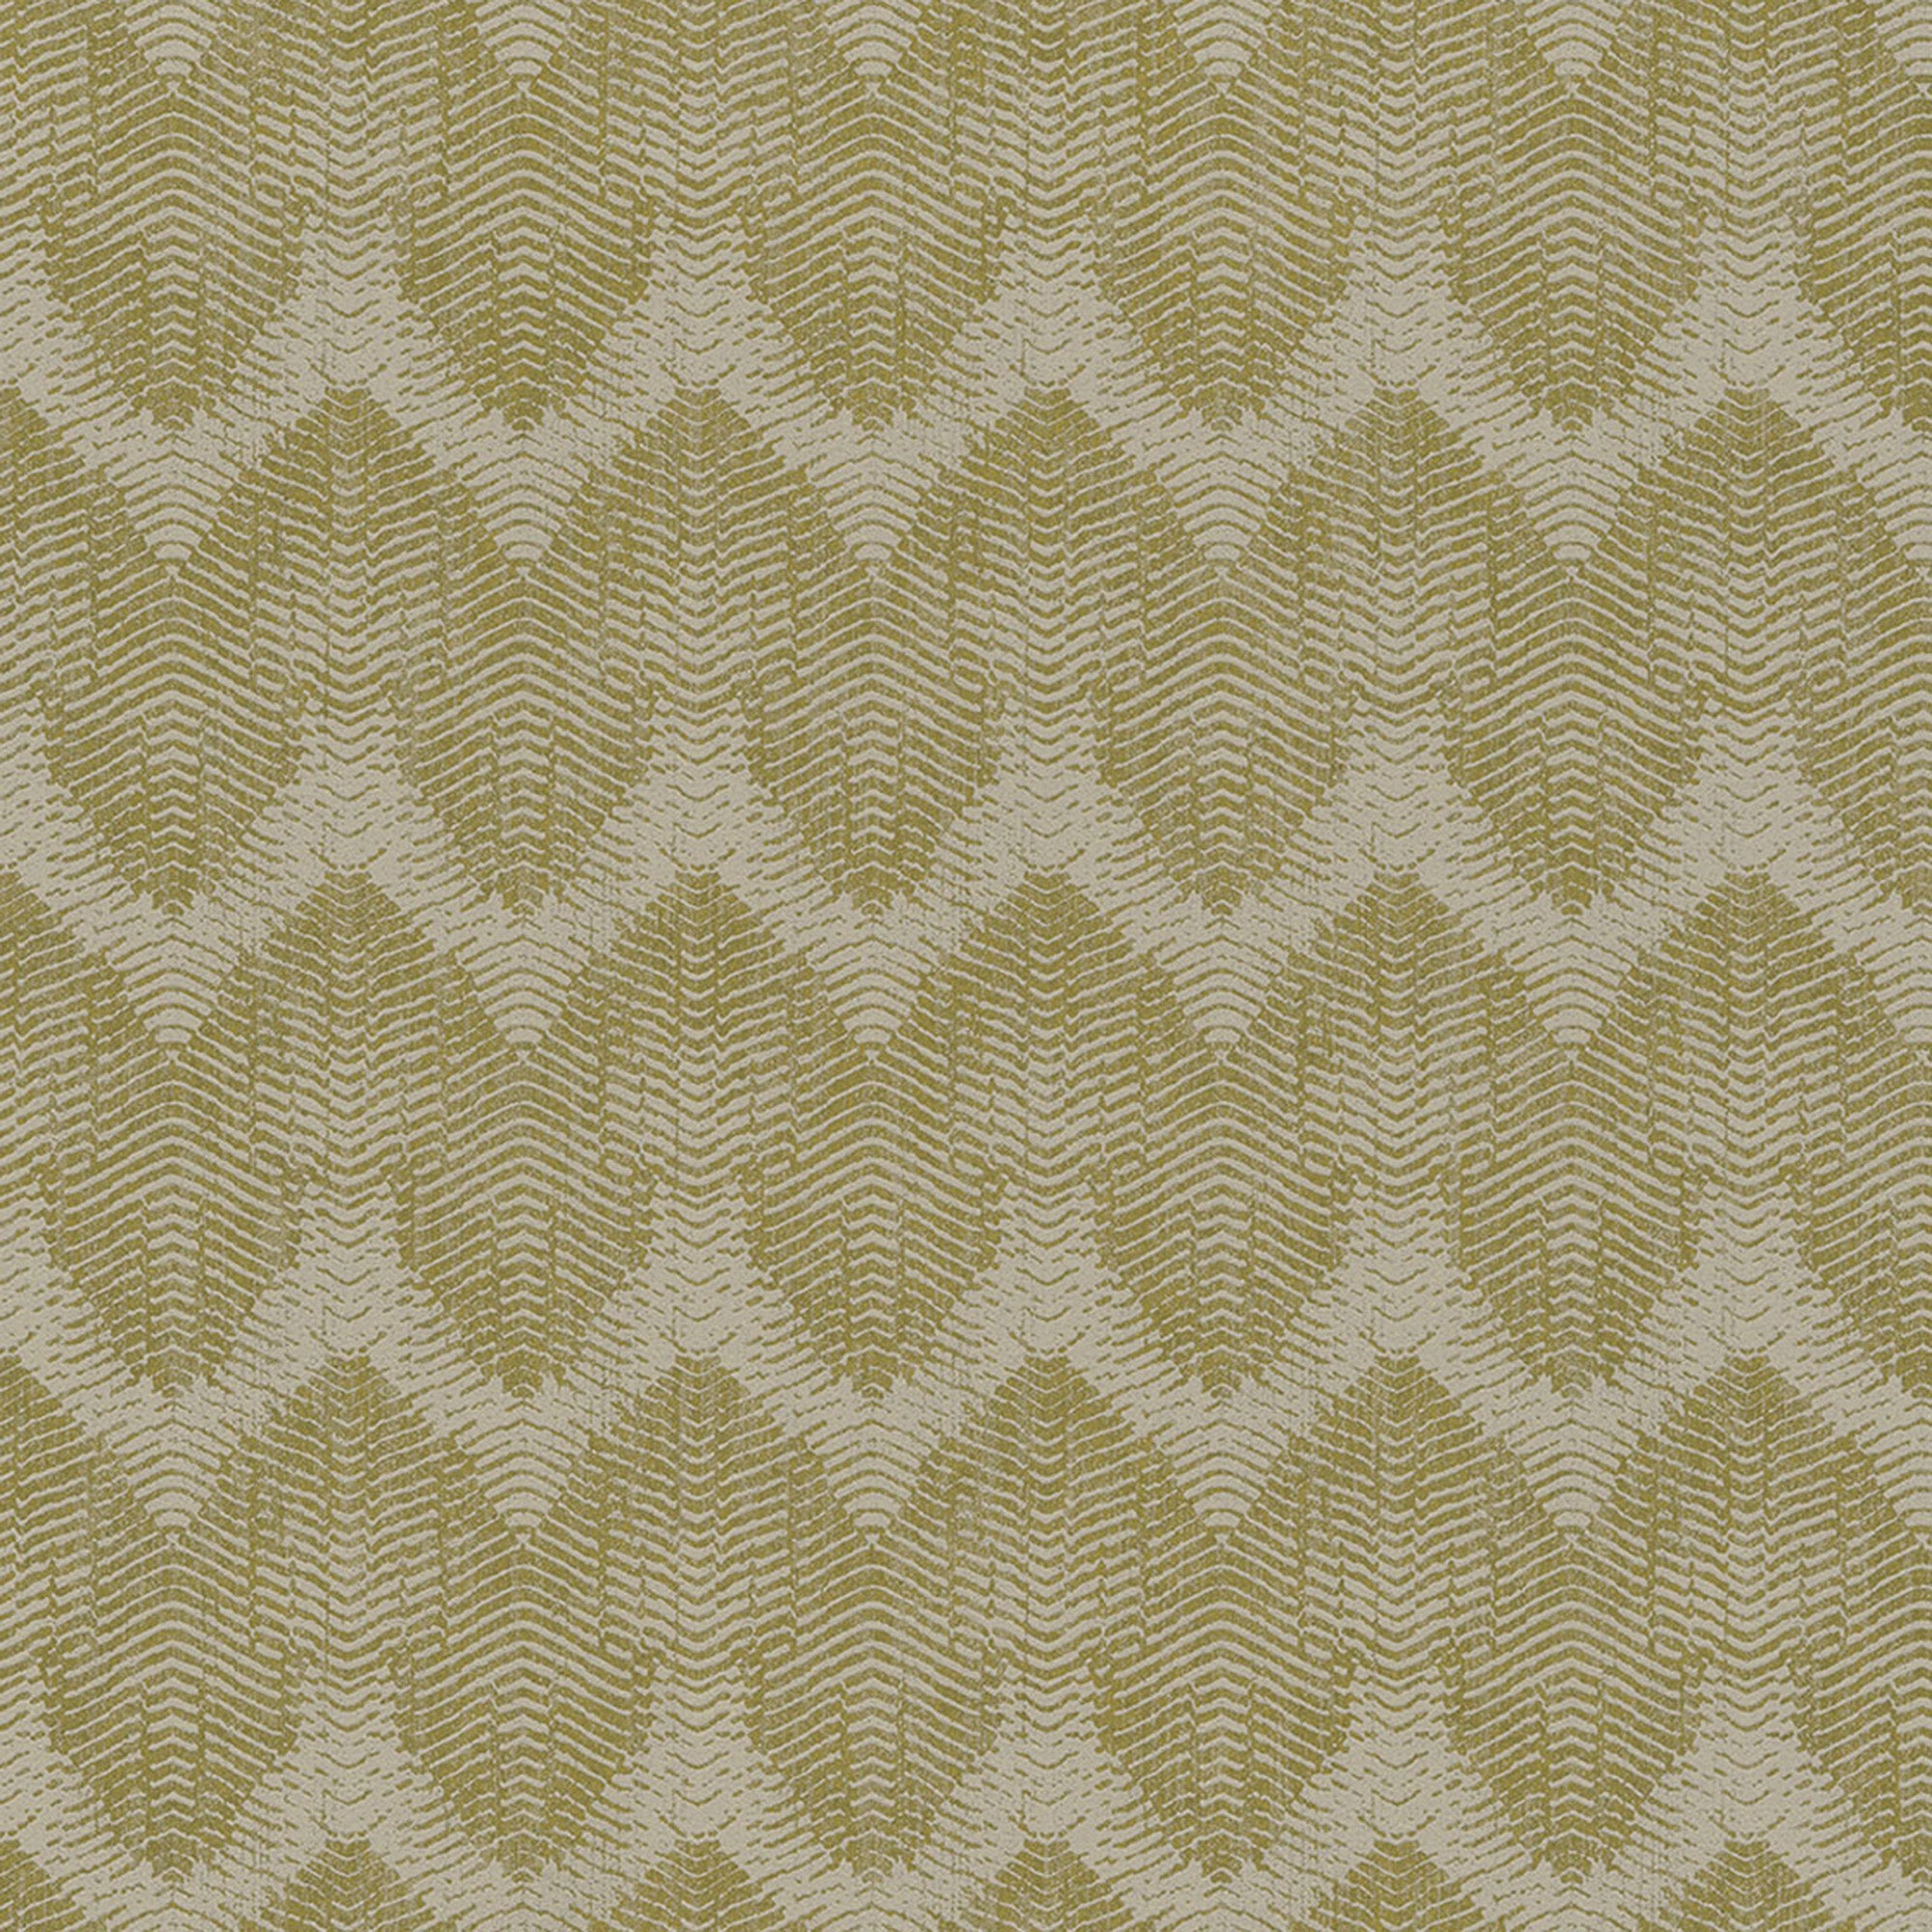 Cream On Green Gold Ground, Metallic Texural Flamestitch. 52098 73